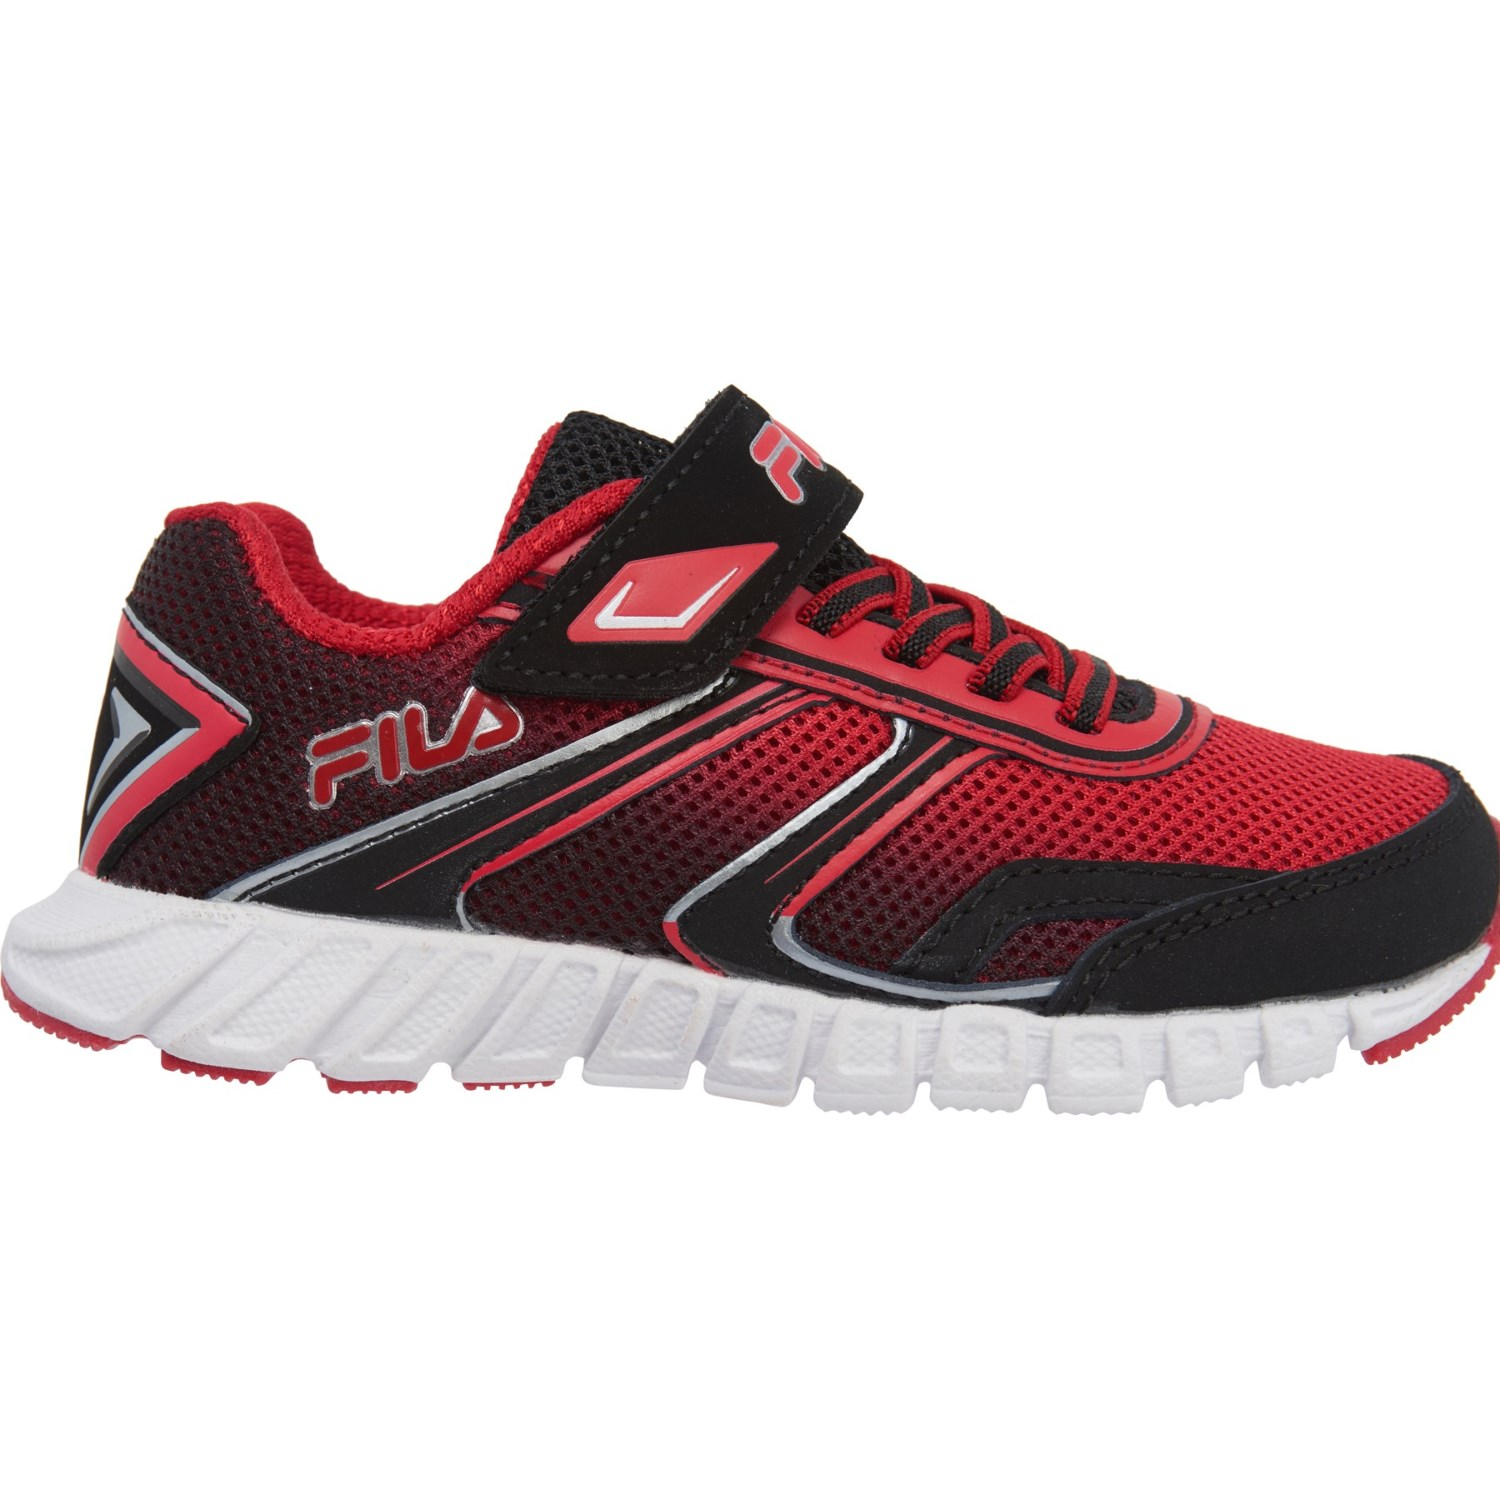 792b5fb8b8cfae Fila Crater 19 Running Shoes (For Boys) - Save 49%